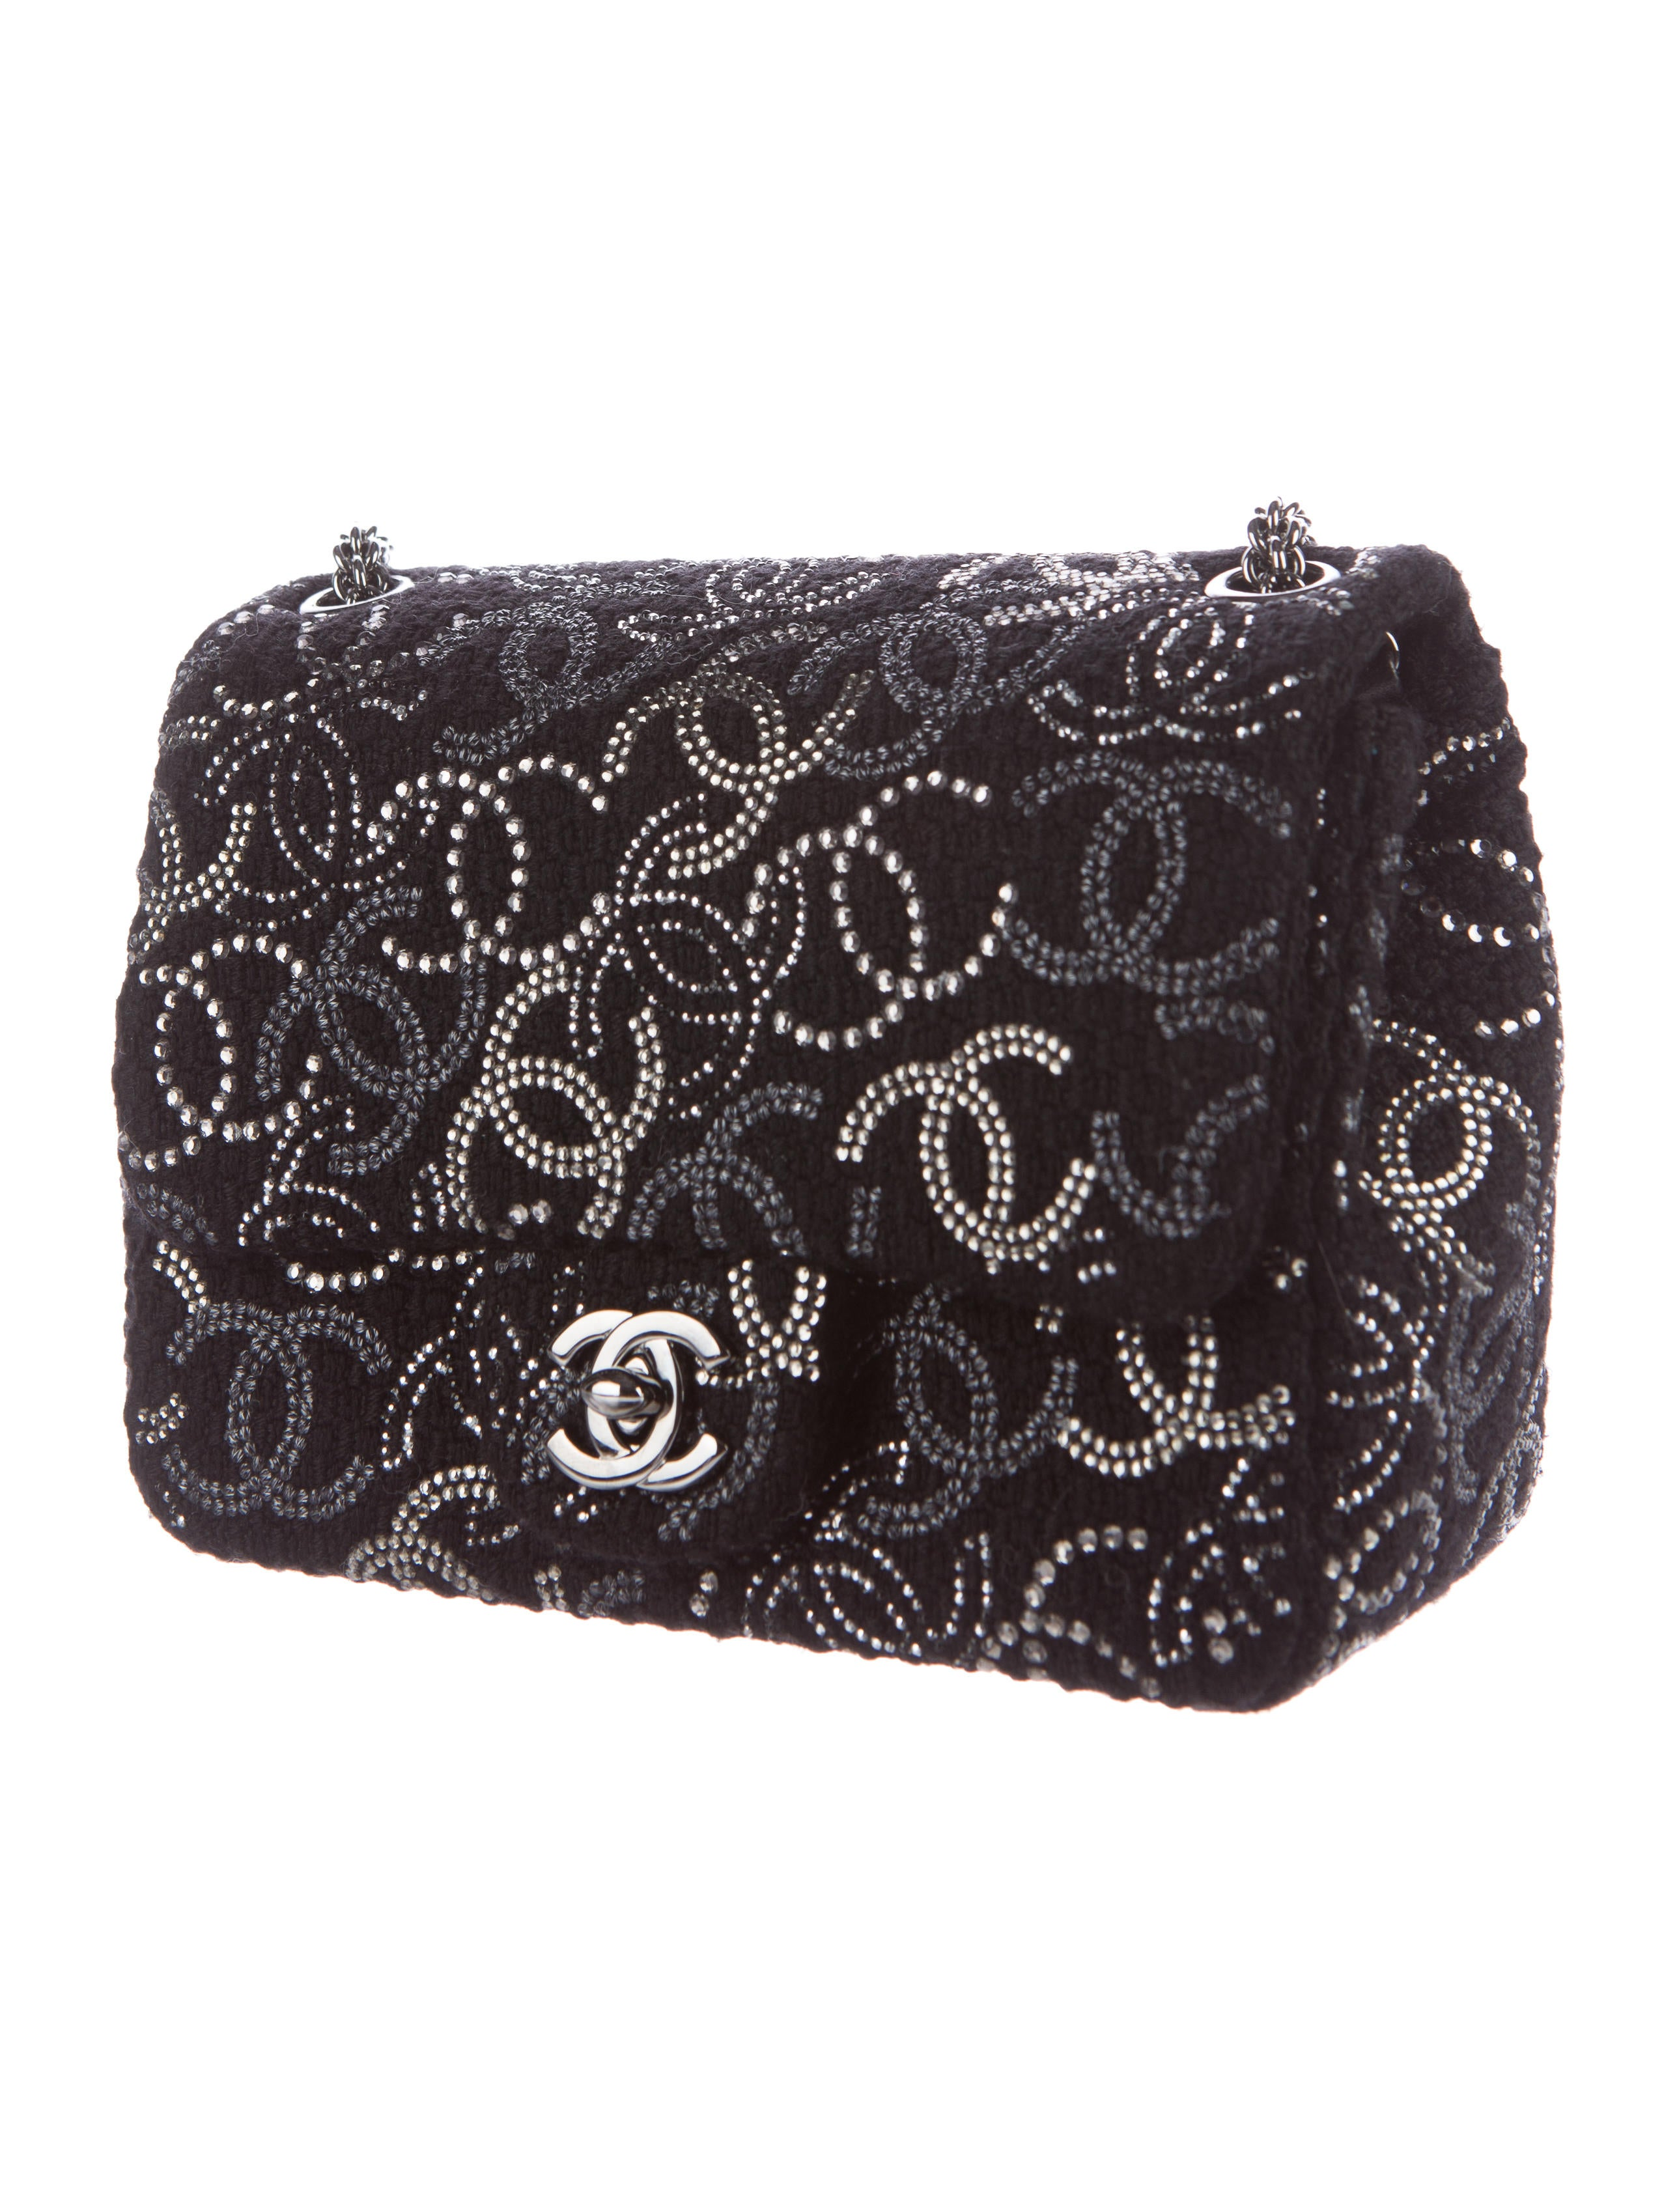 6c014f9f6eea Chanel Paris Shanghai Bag Collection | Stanford Center for ...